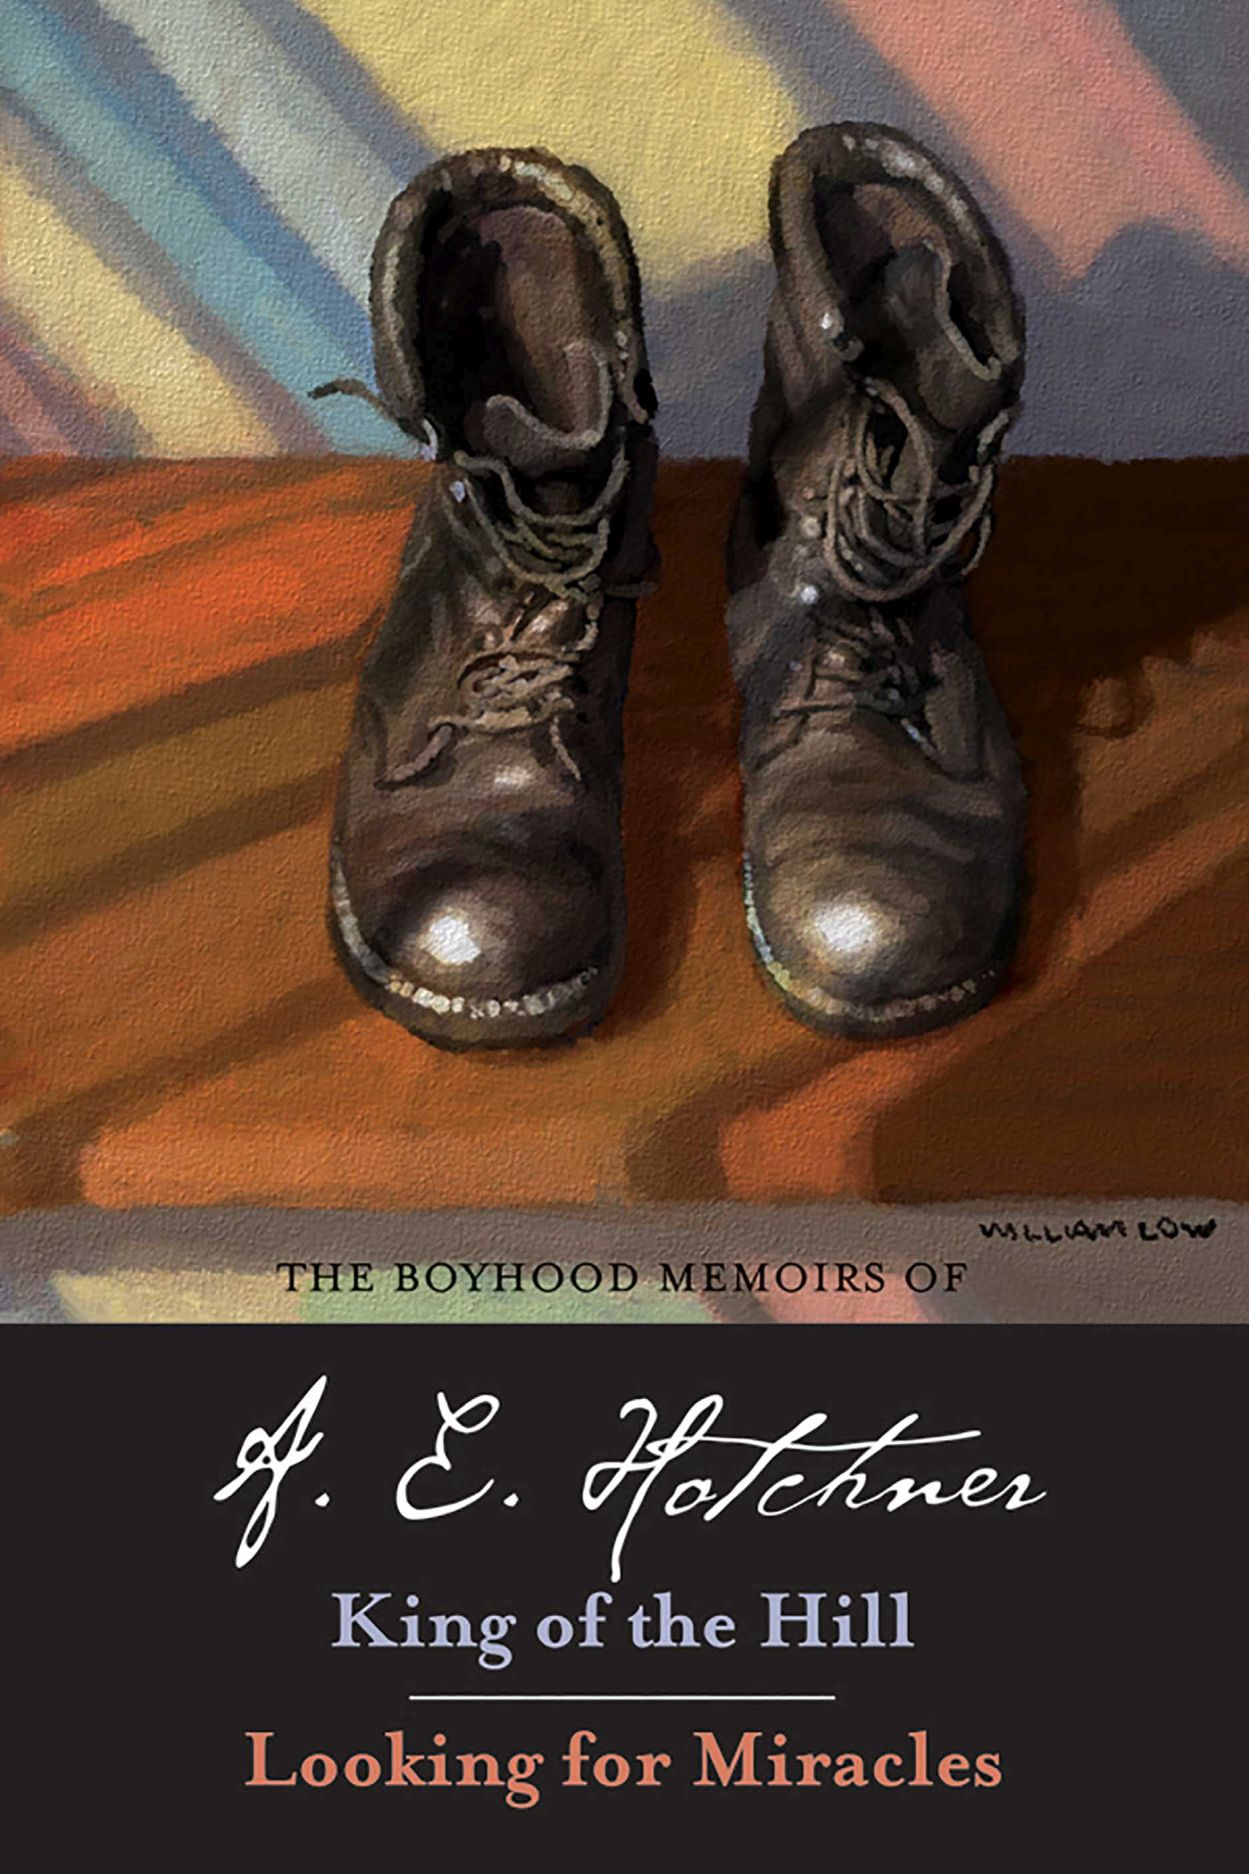 The Boyhood Memoirs of A. E. Hotchner